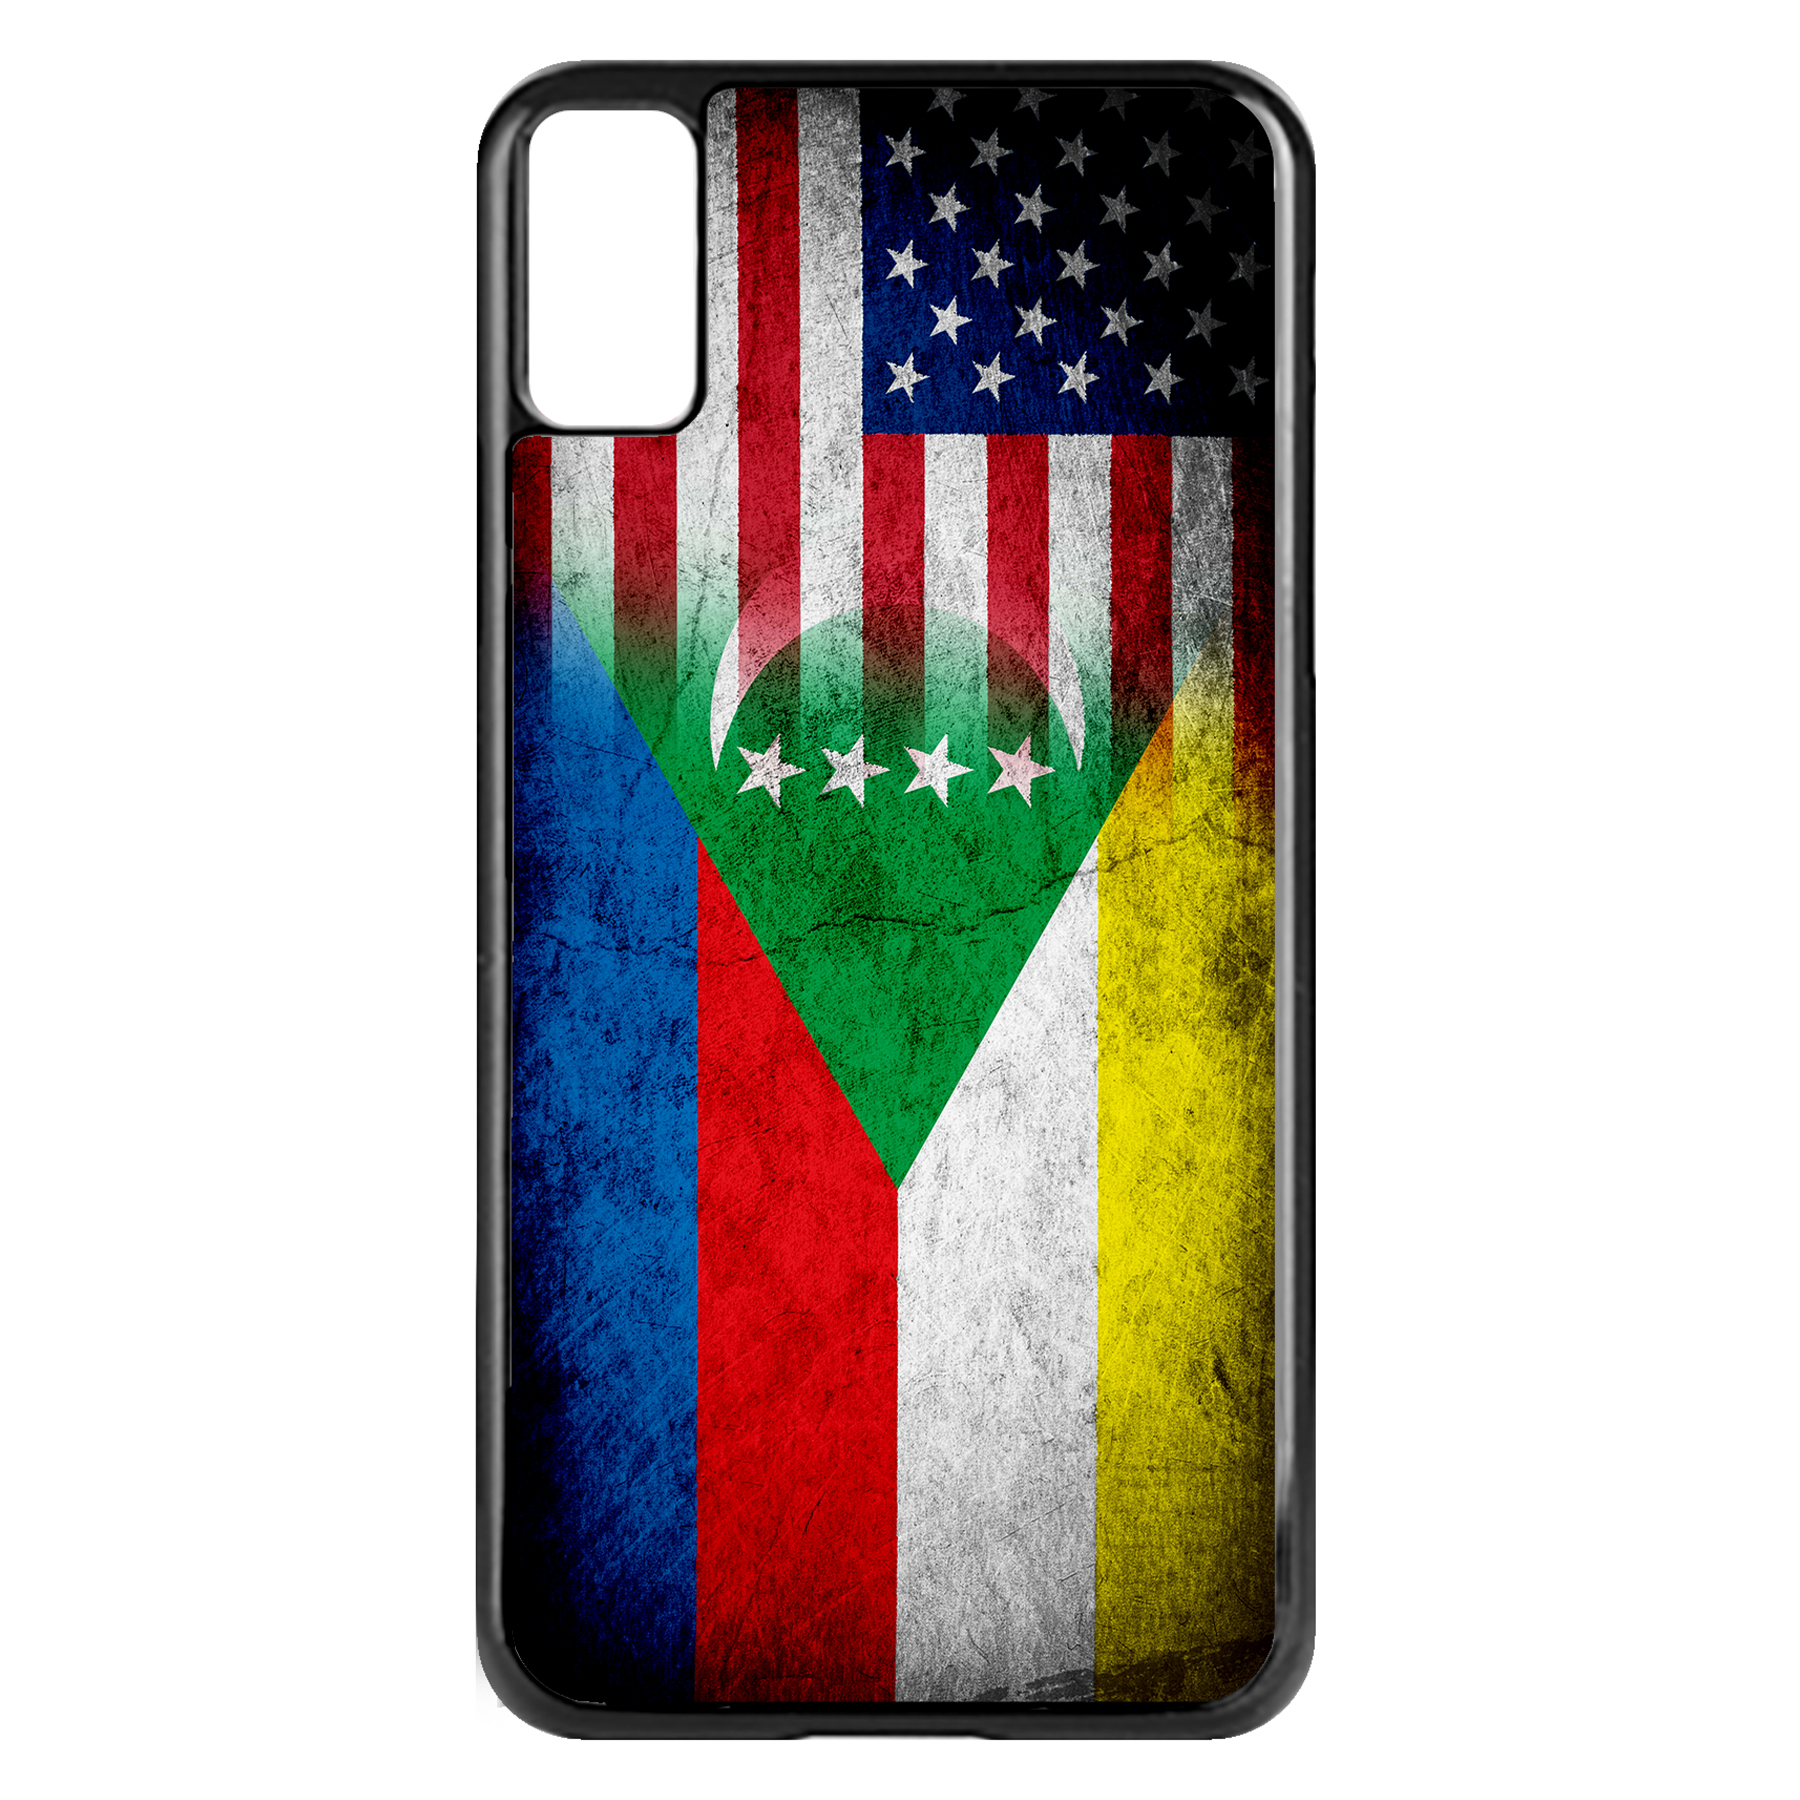 Apple-iPhone-Case-with-Flag-of-Comoros-Comorian-Many-Design-Options thumbnail 81